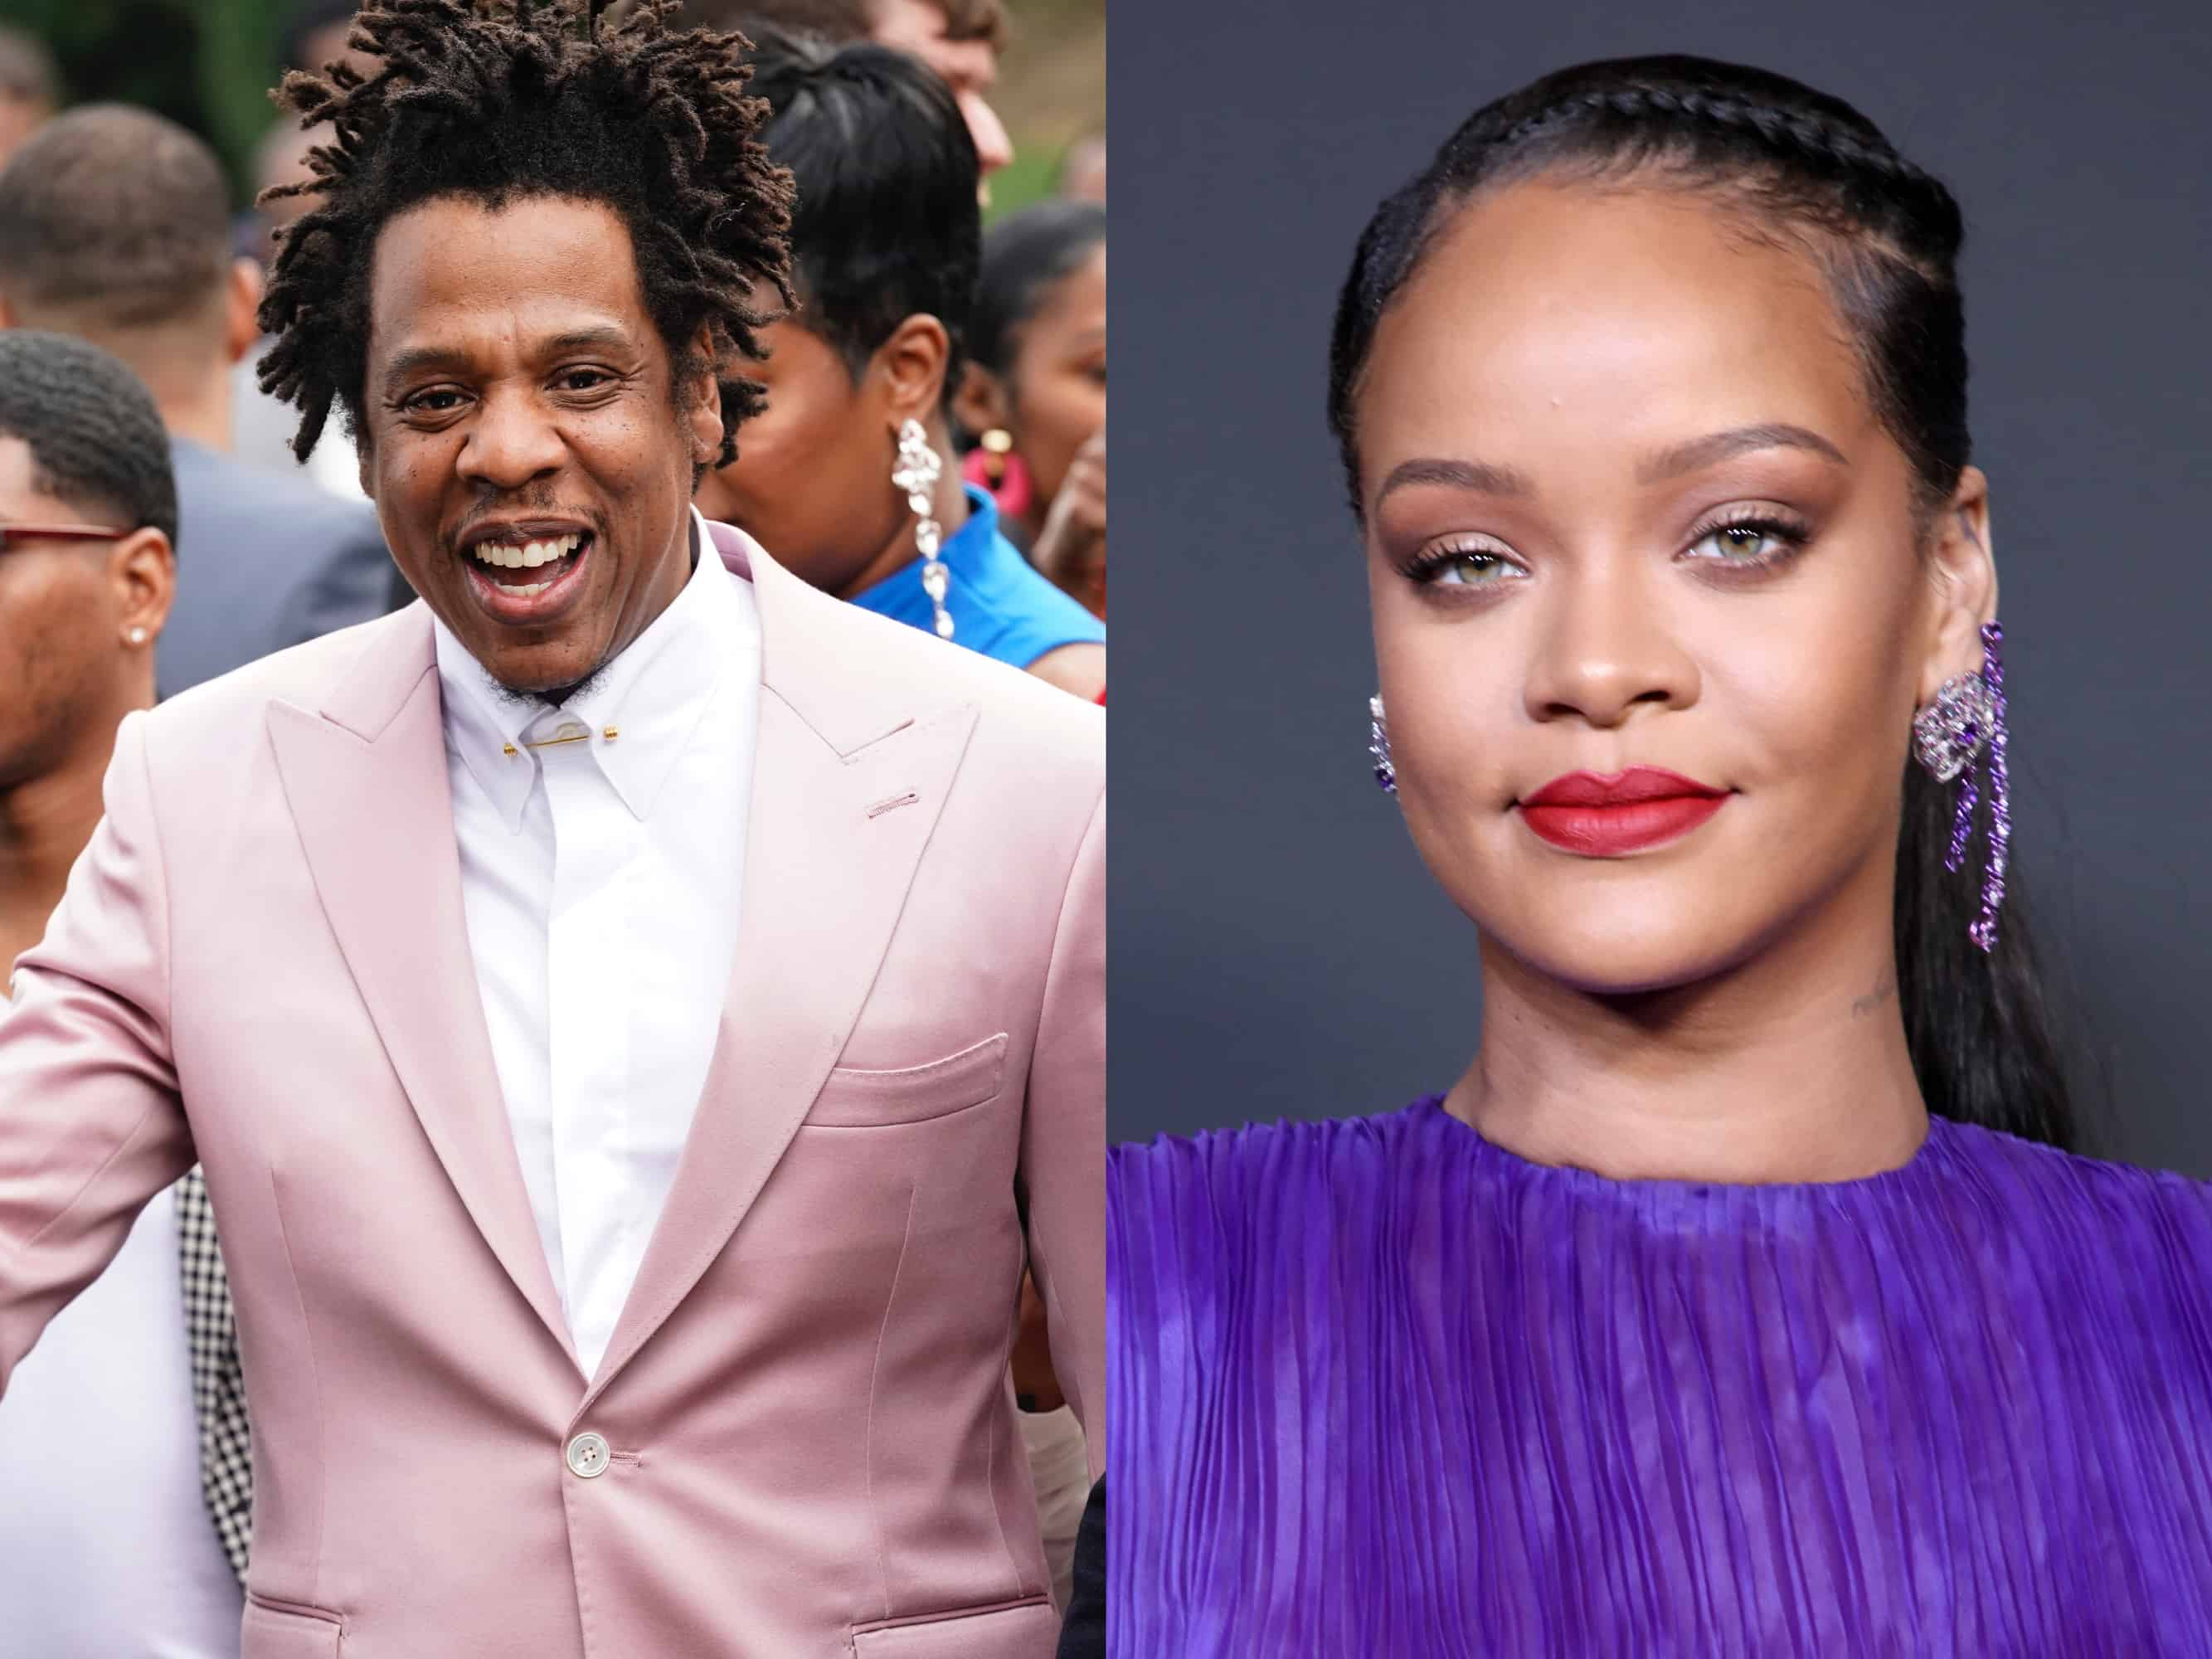 Jay-Z and Rihanna have teamed up through their foundations to make a $2 million donation to help with the relief for the coronavirus.